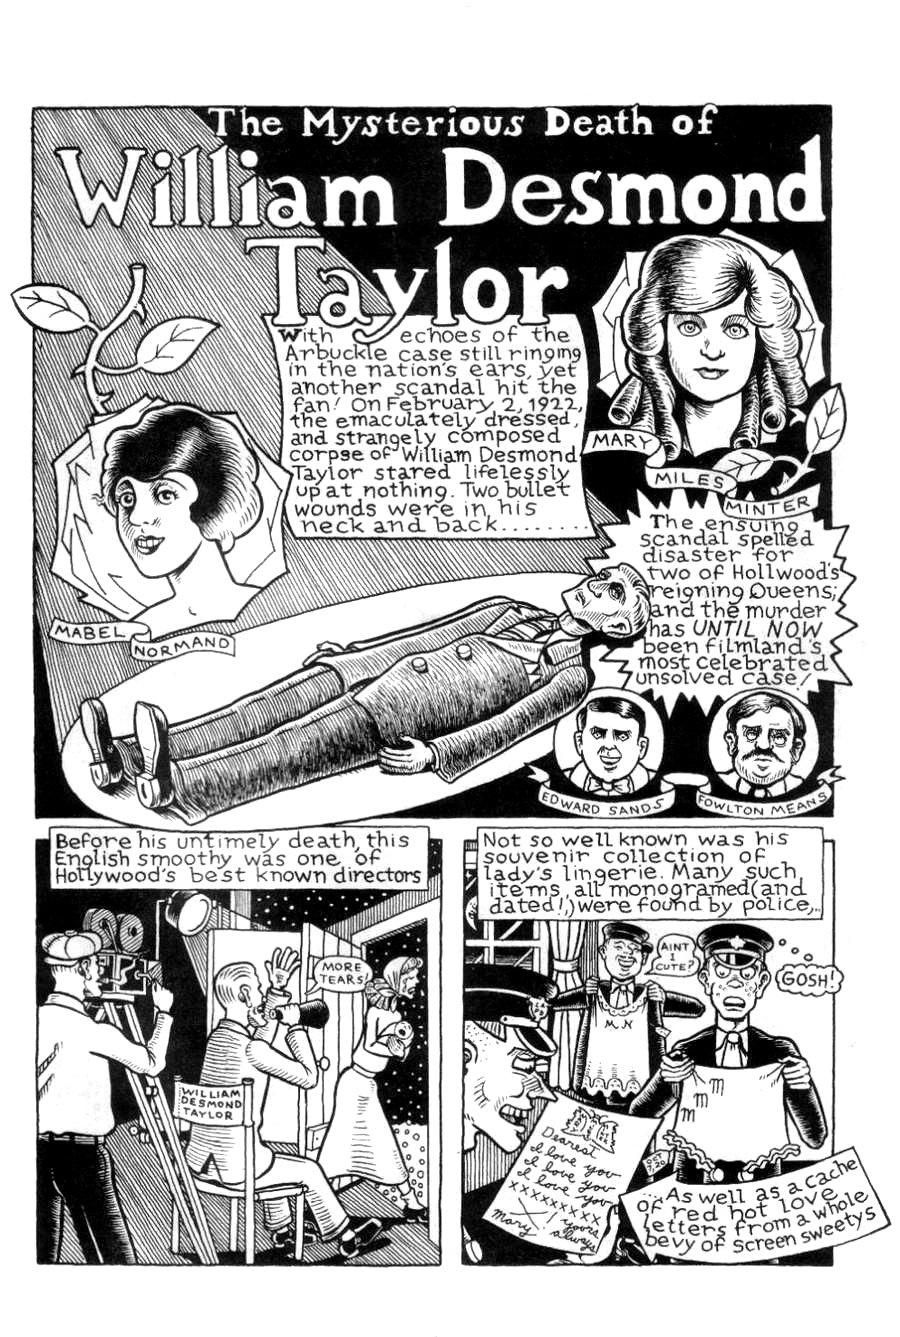 Factually inaccurate and wantonly sensational Kim Deitch's illustration of William Desmond Taylor's story is still pretty fun.